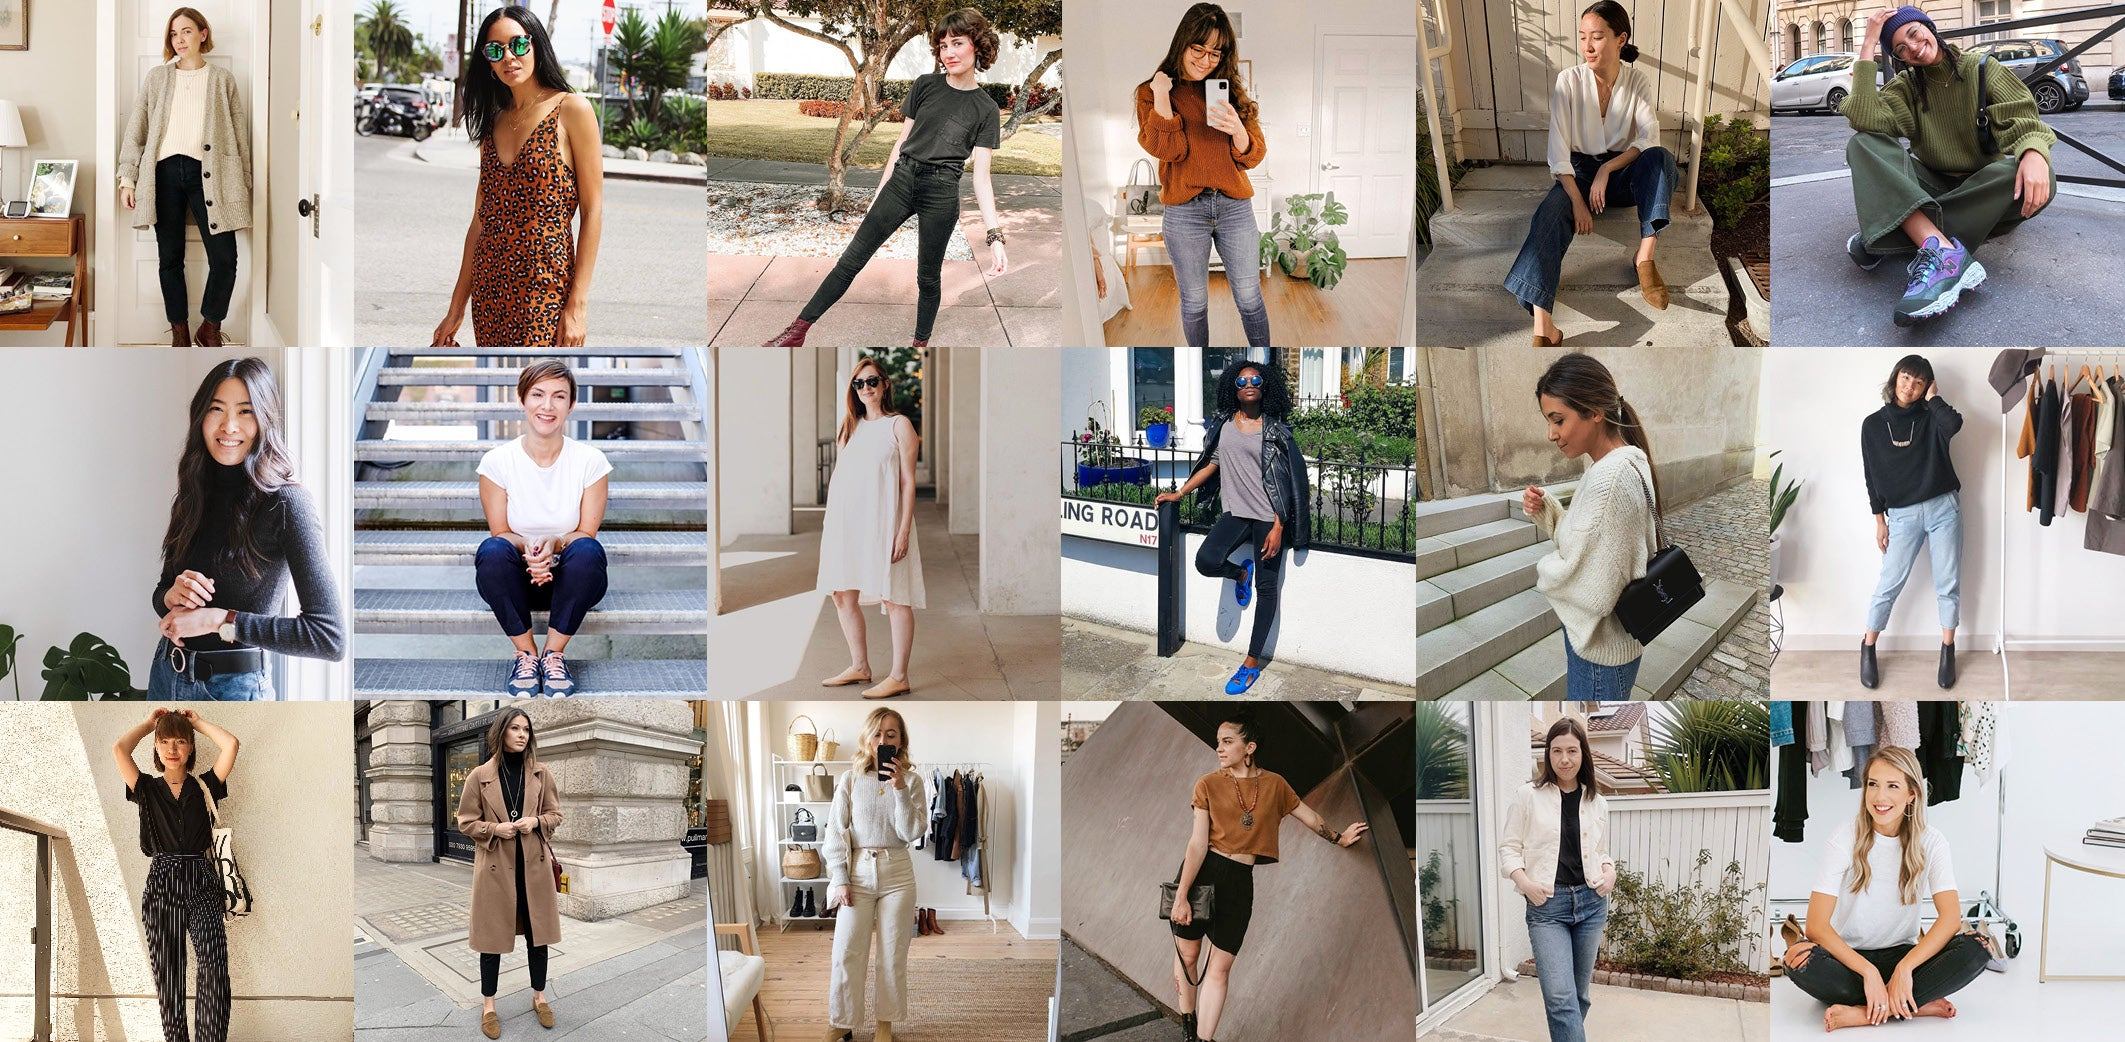 Style Fashion Capsule Wardrobe Ideas and Inspiration - Be your Own Muse - OwnMuse